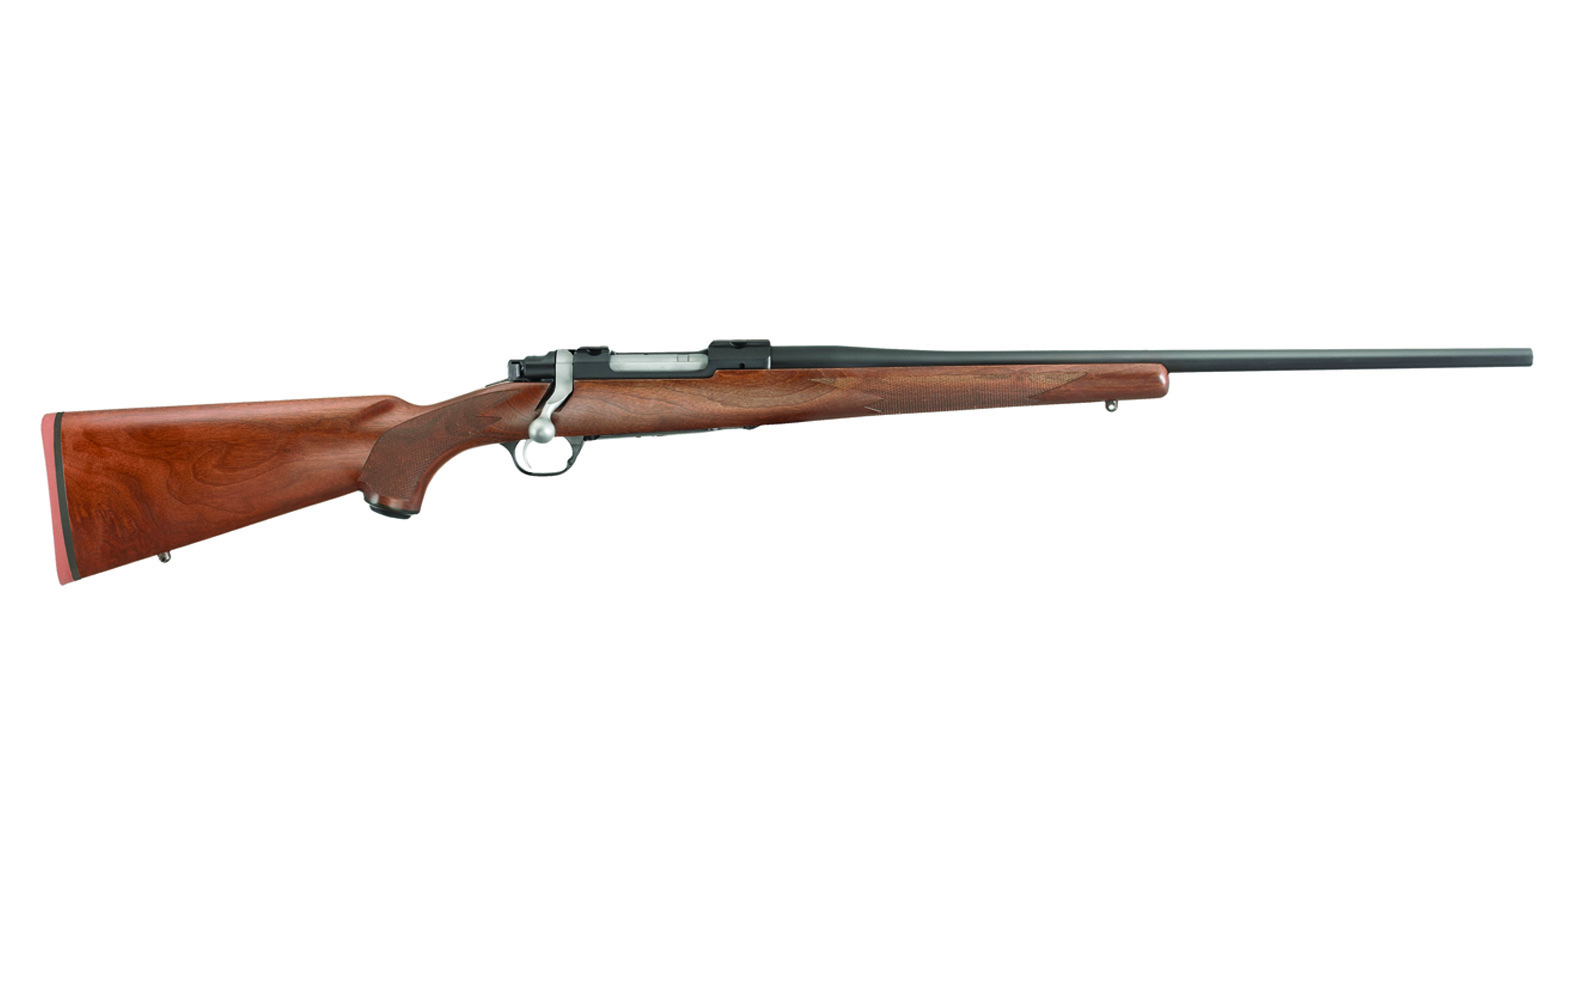 Ruger M77 Hawkeye review - The Field